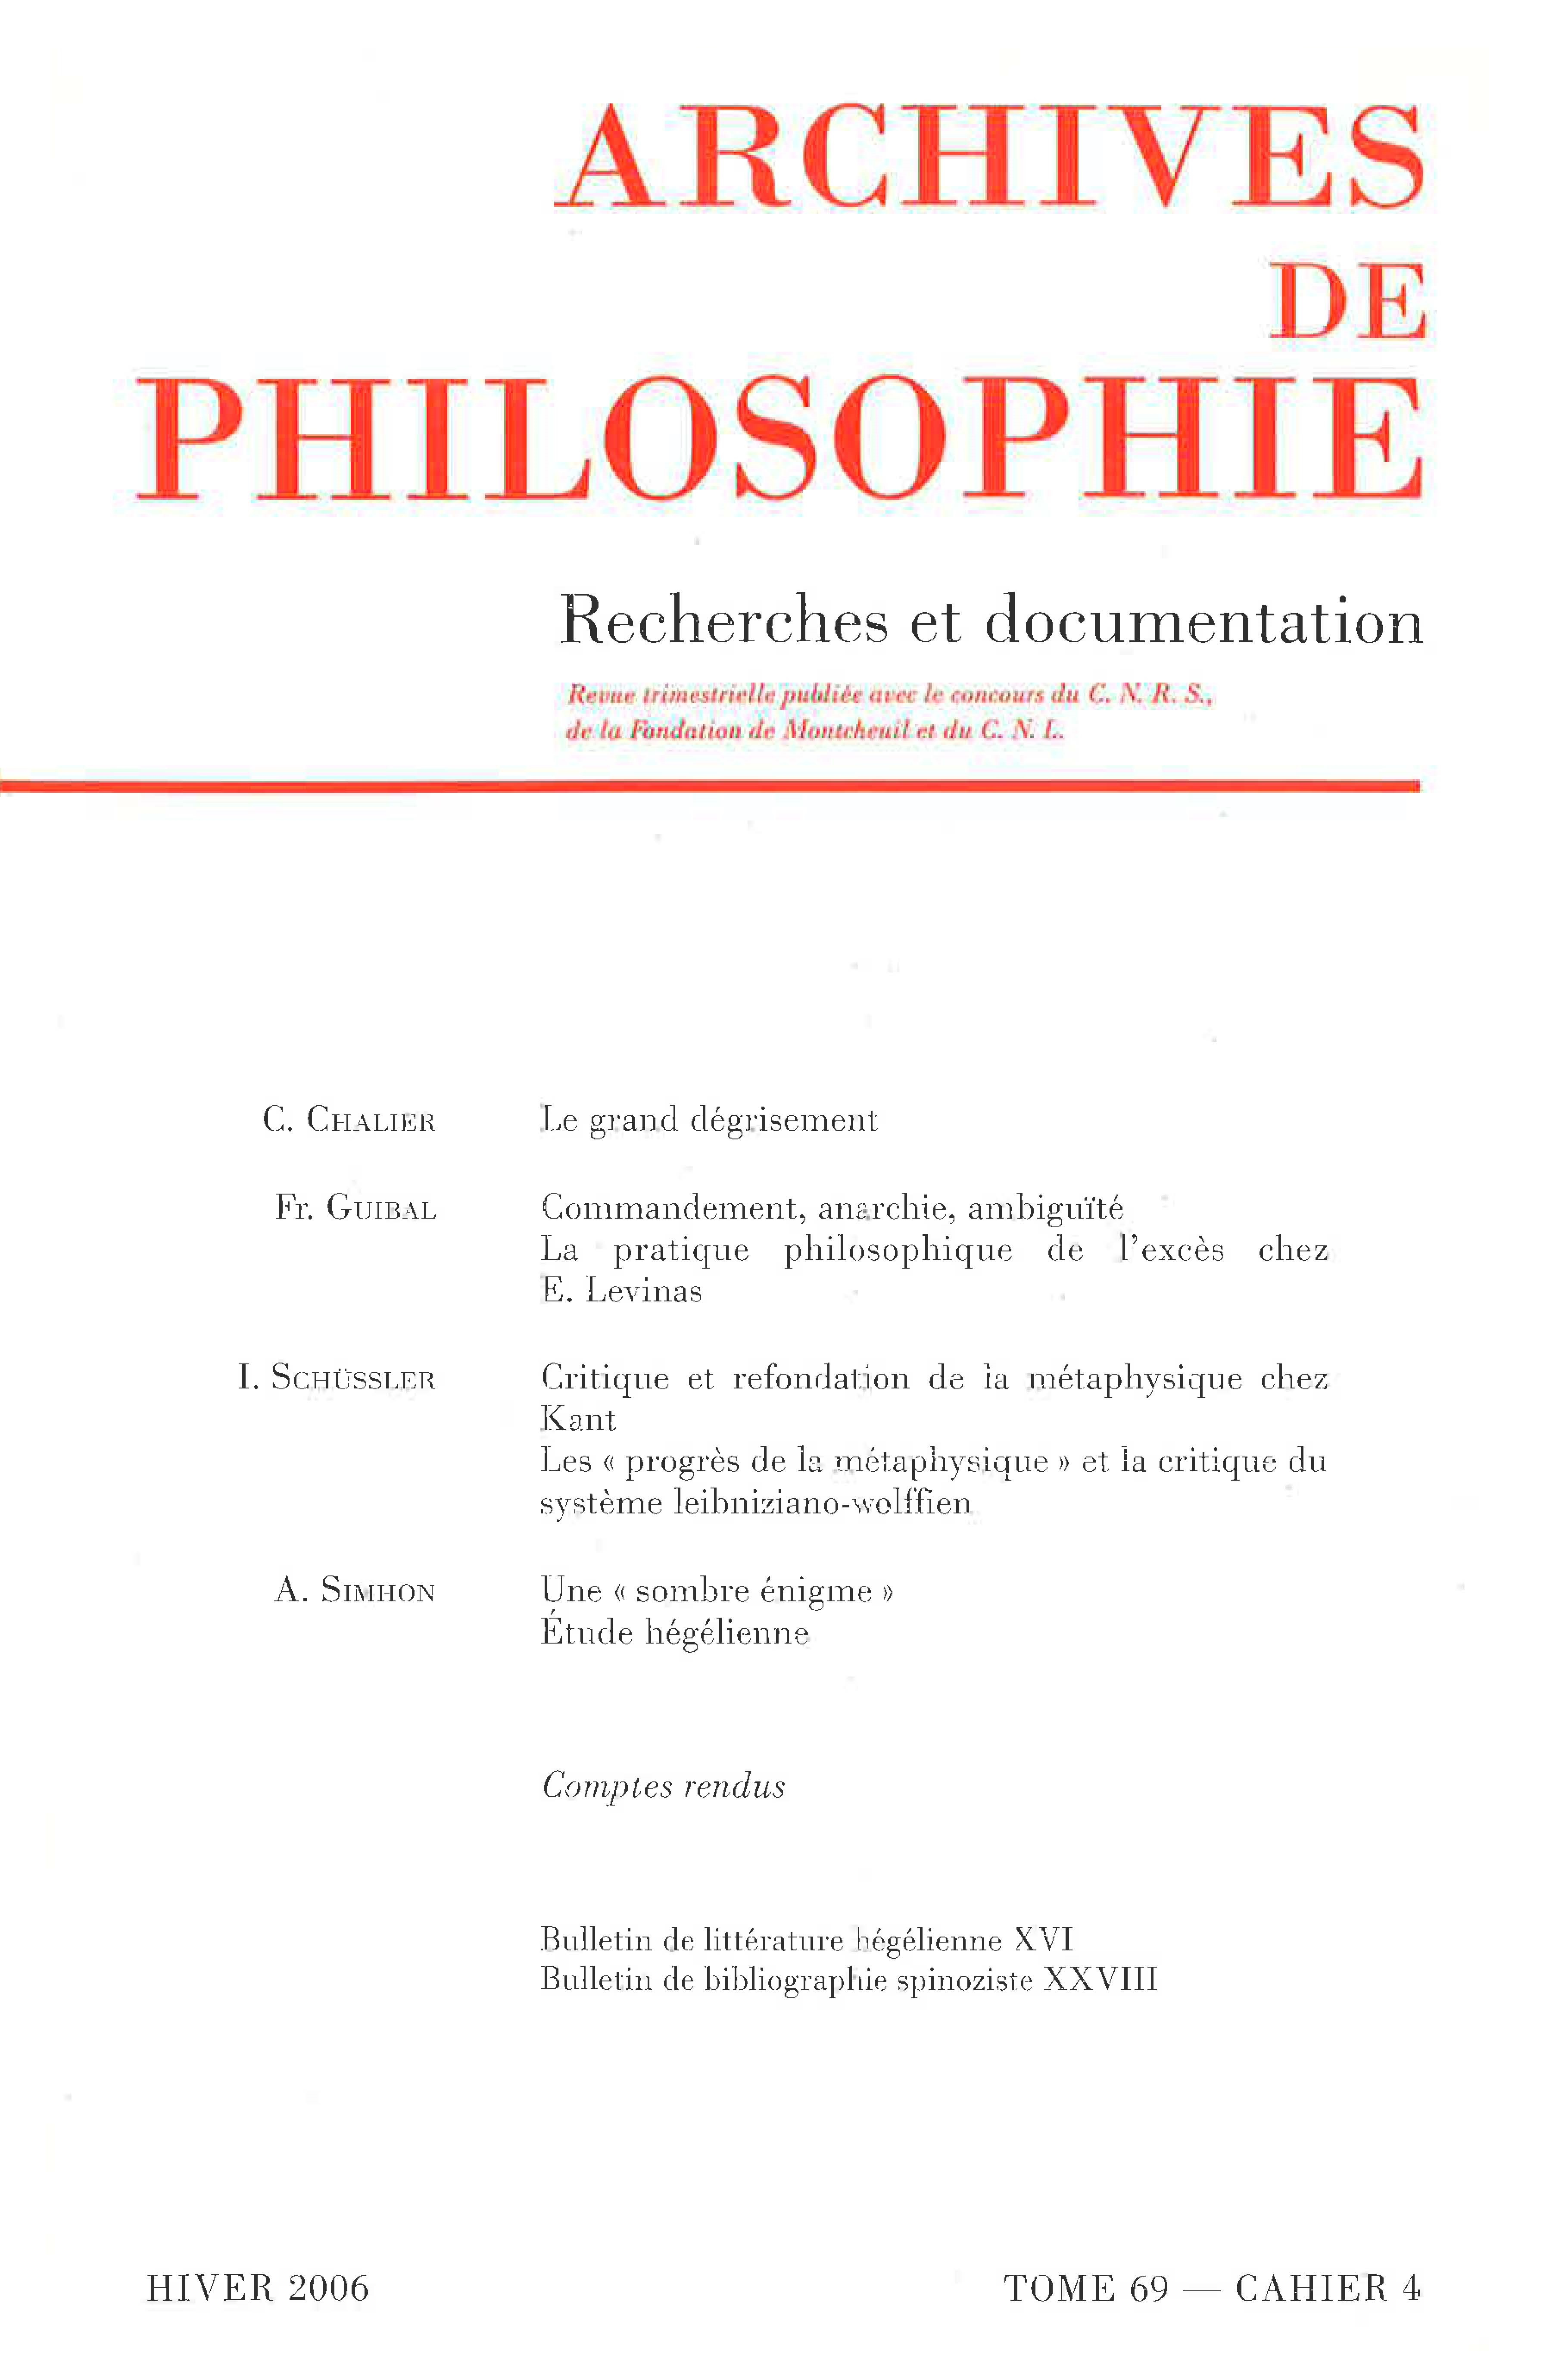 La religion : Cicéron, Spinoza, Lucrèce, Bergson, Hegel (Hors collection) (French Edition)